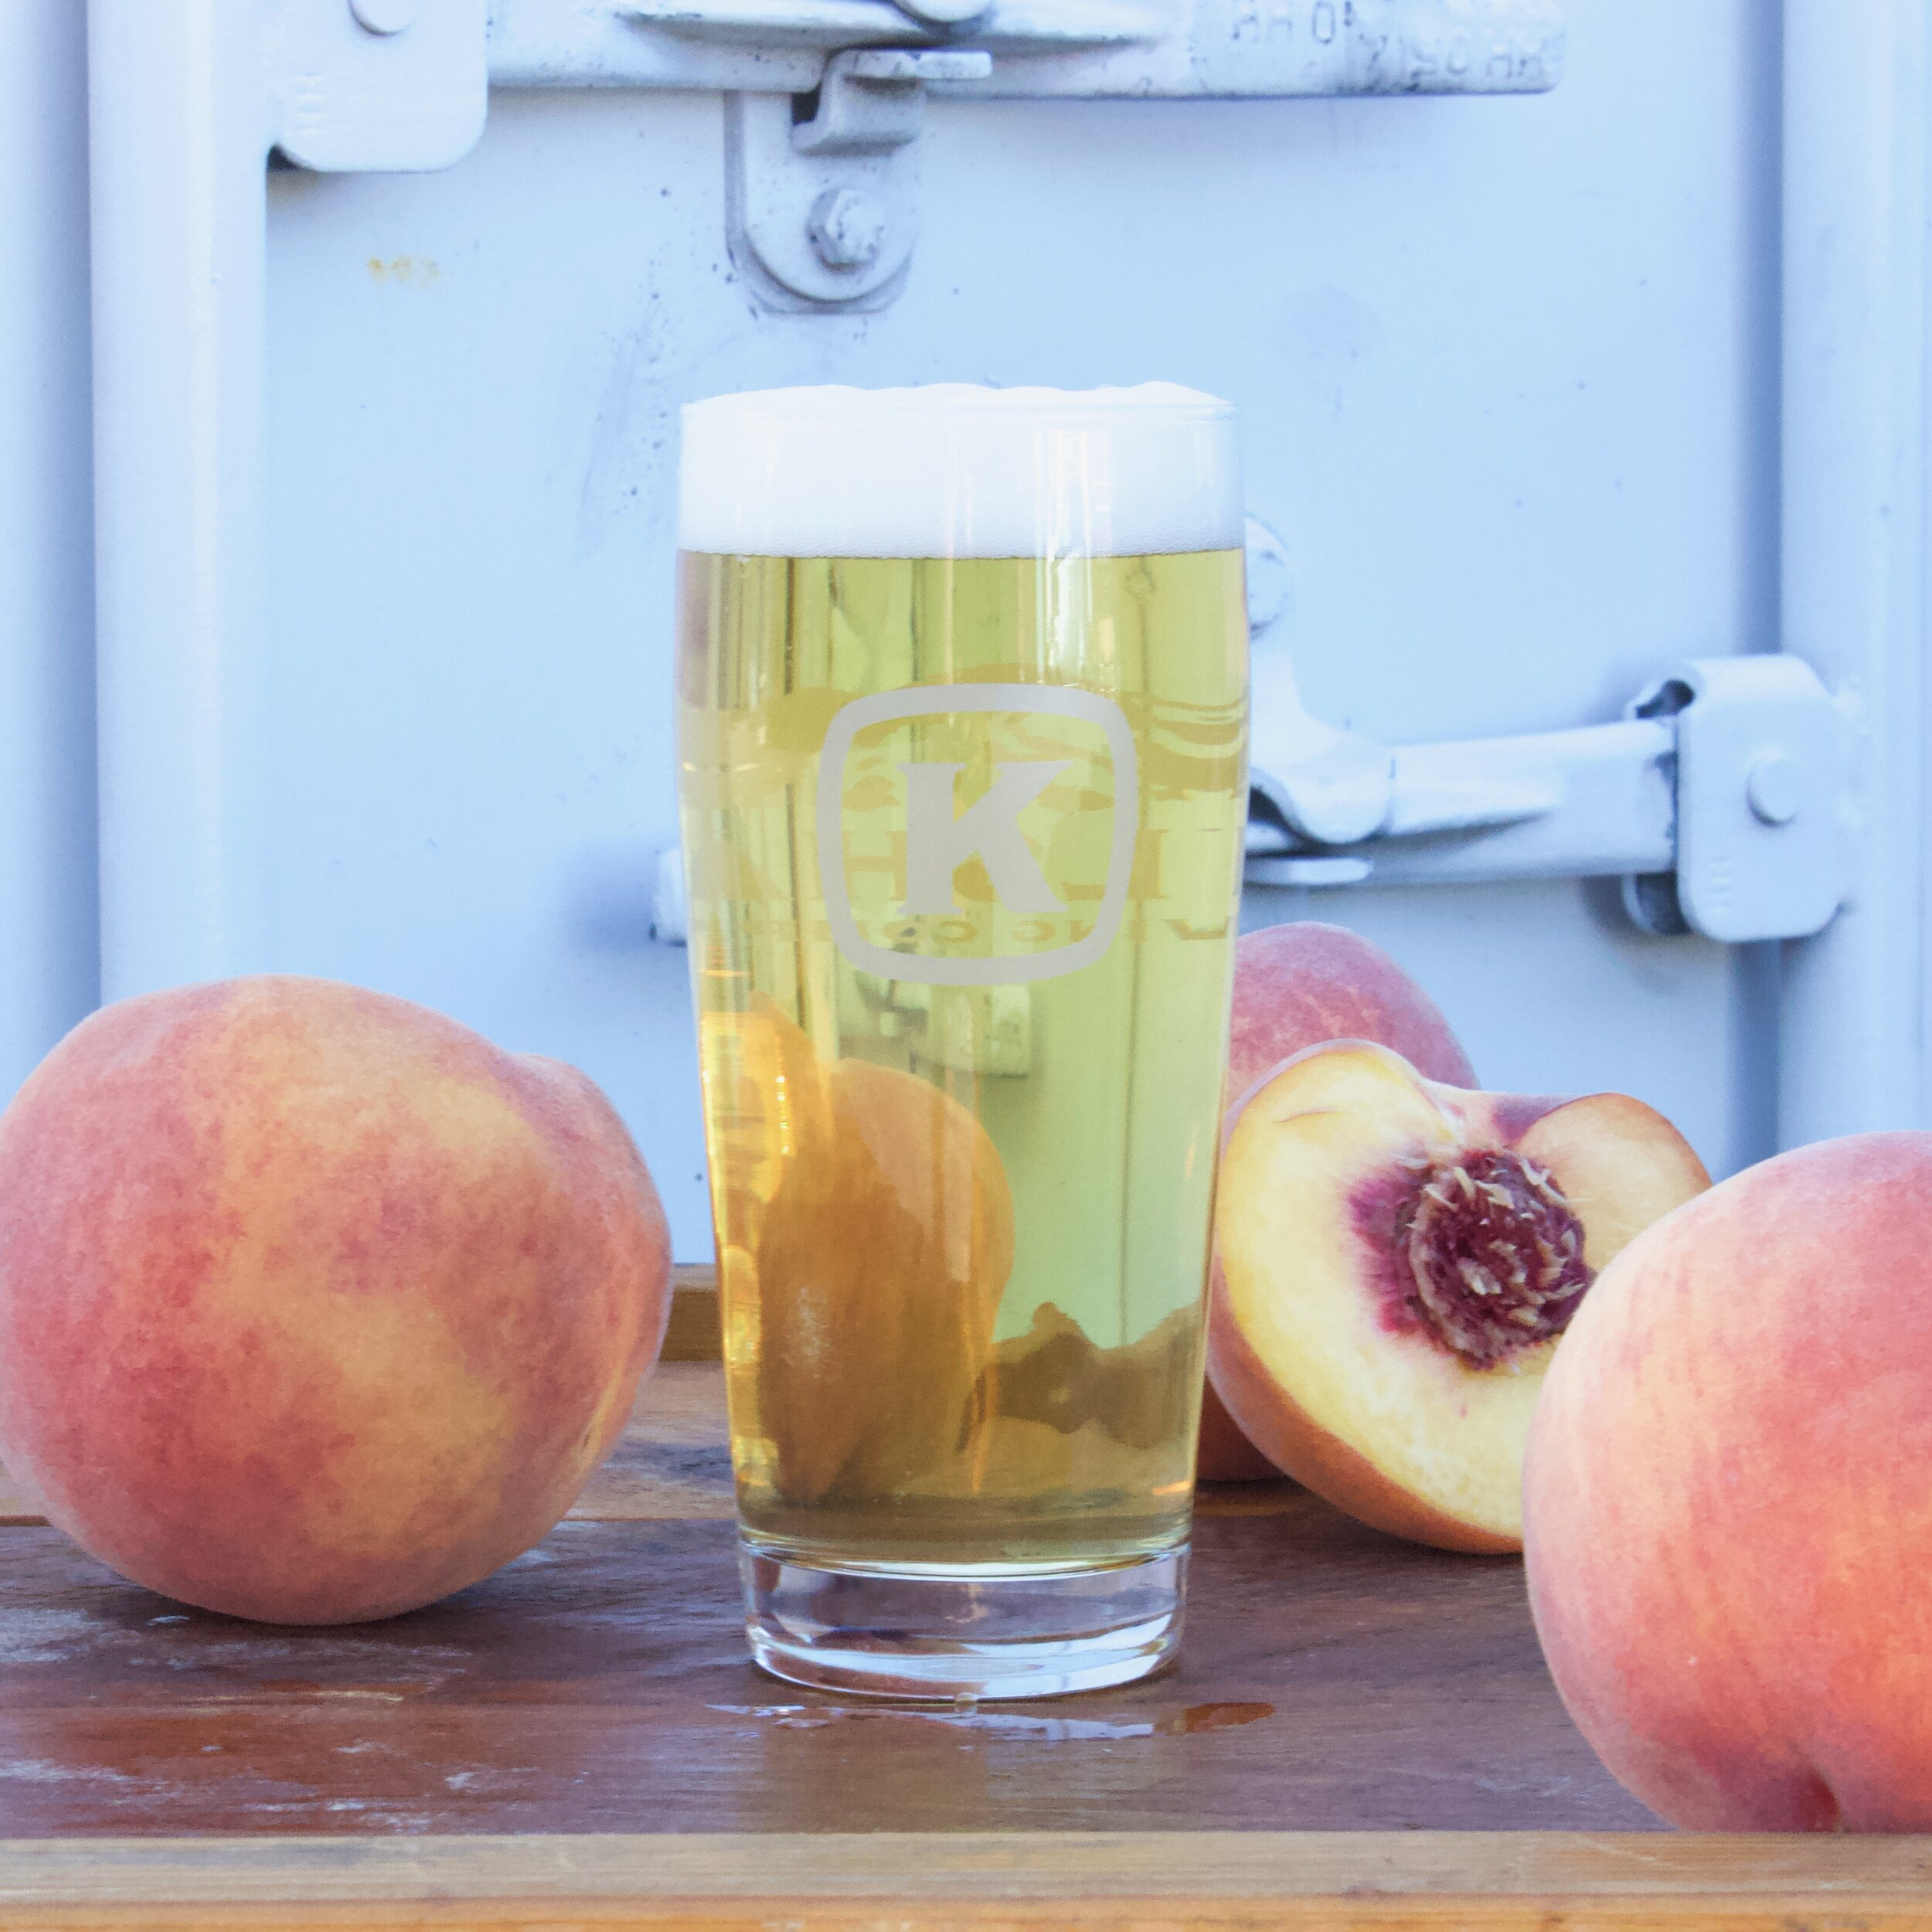 Peach Apero from Kulshan Brewing